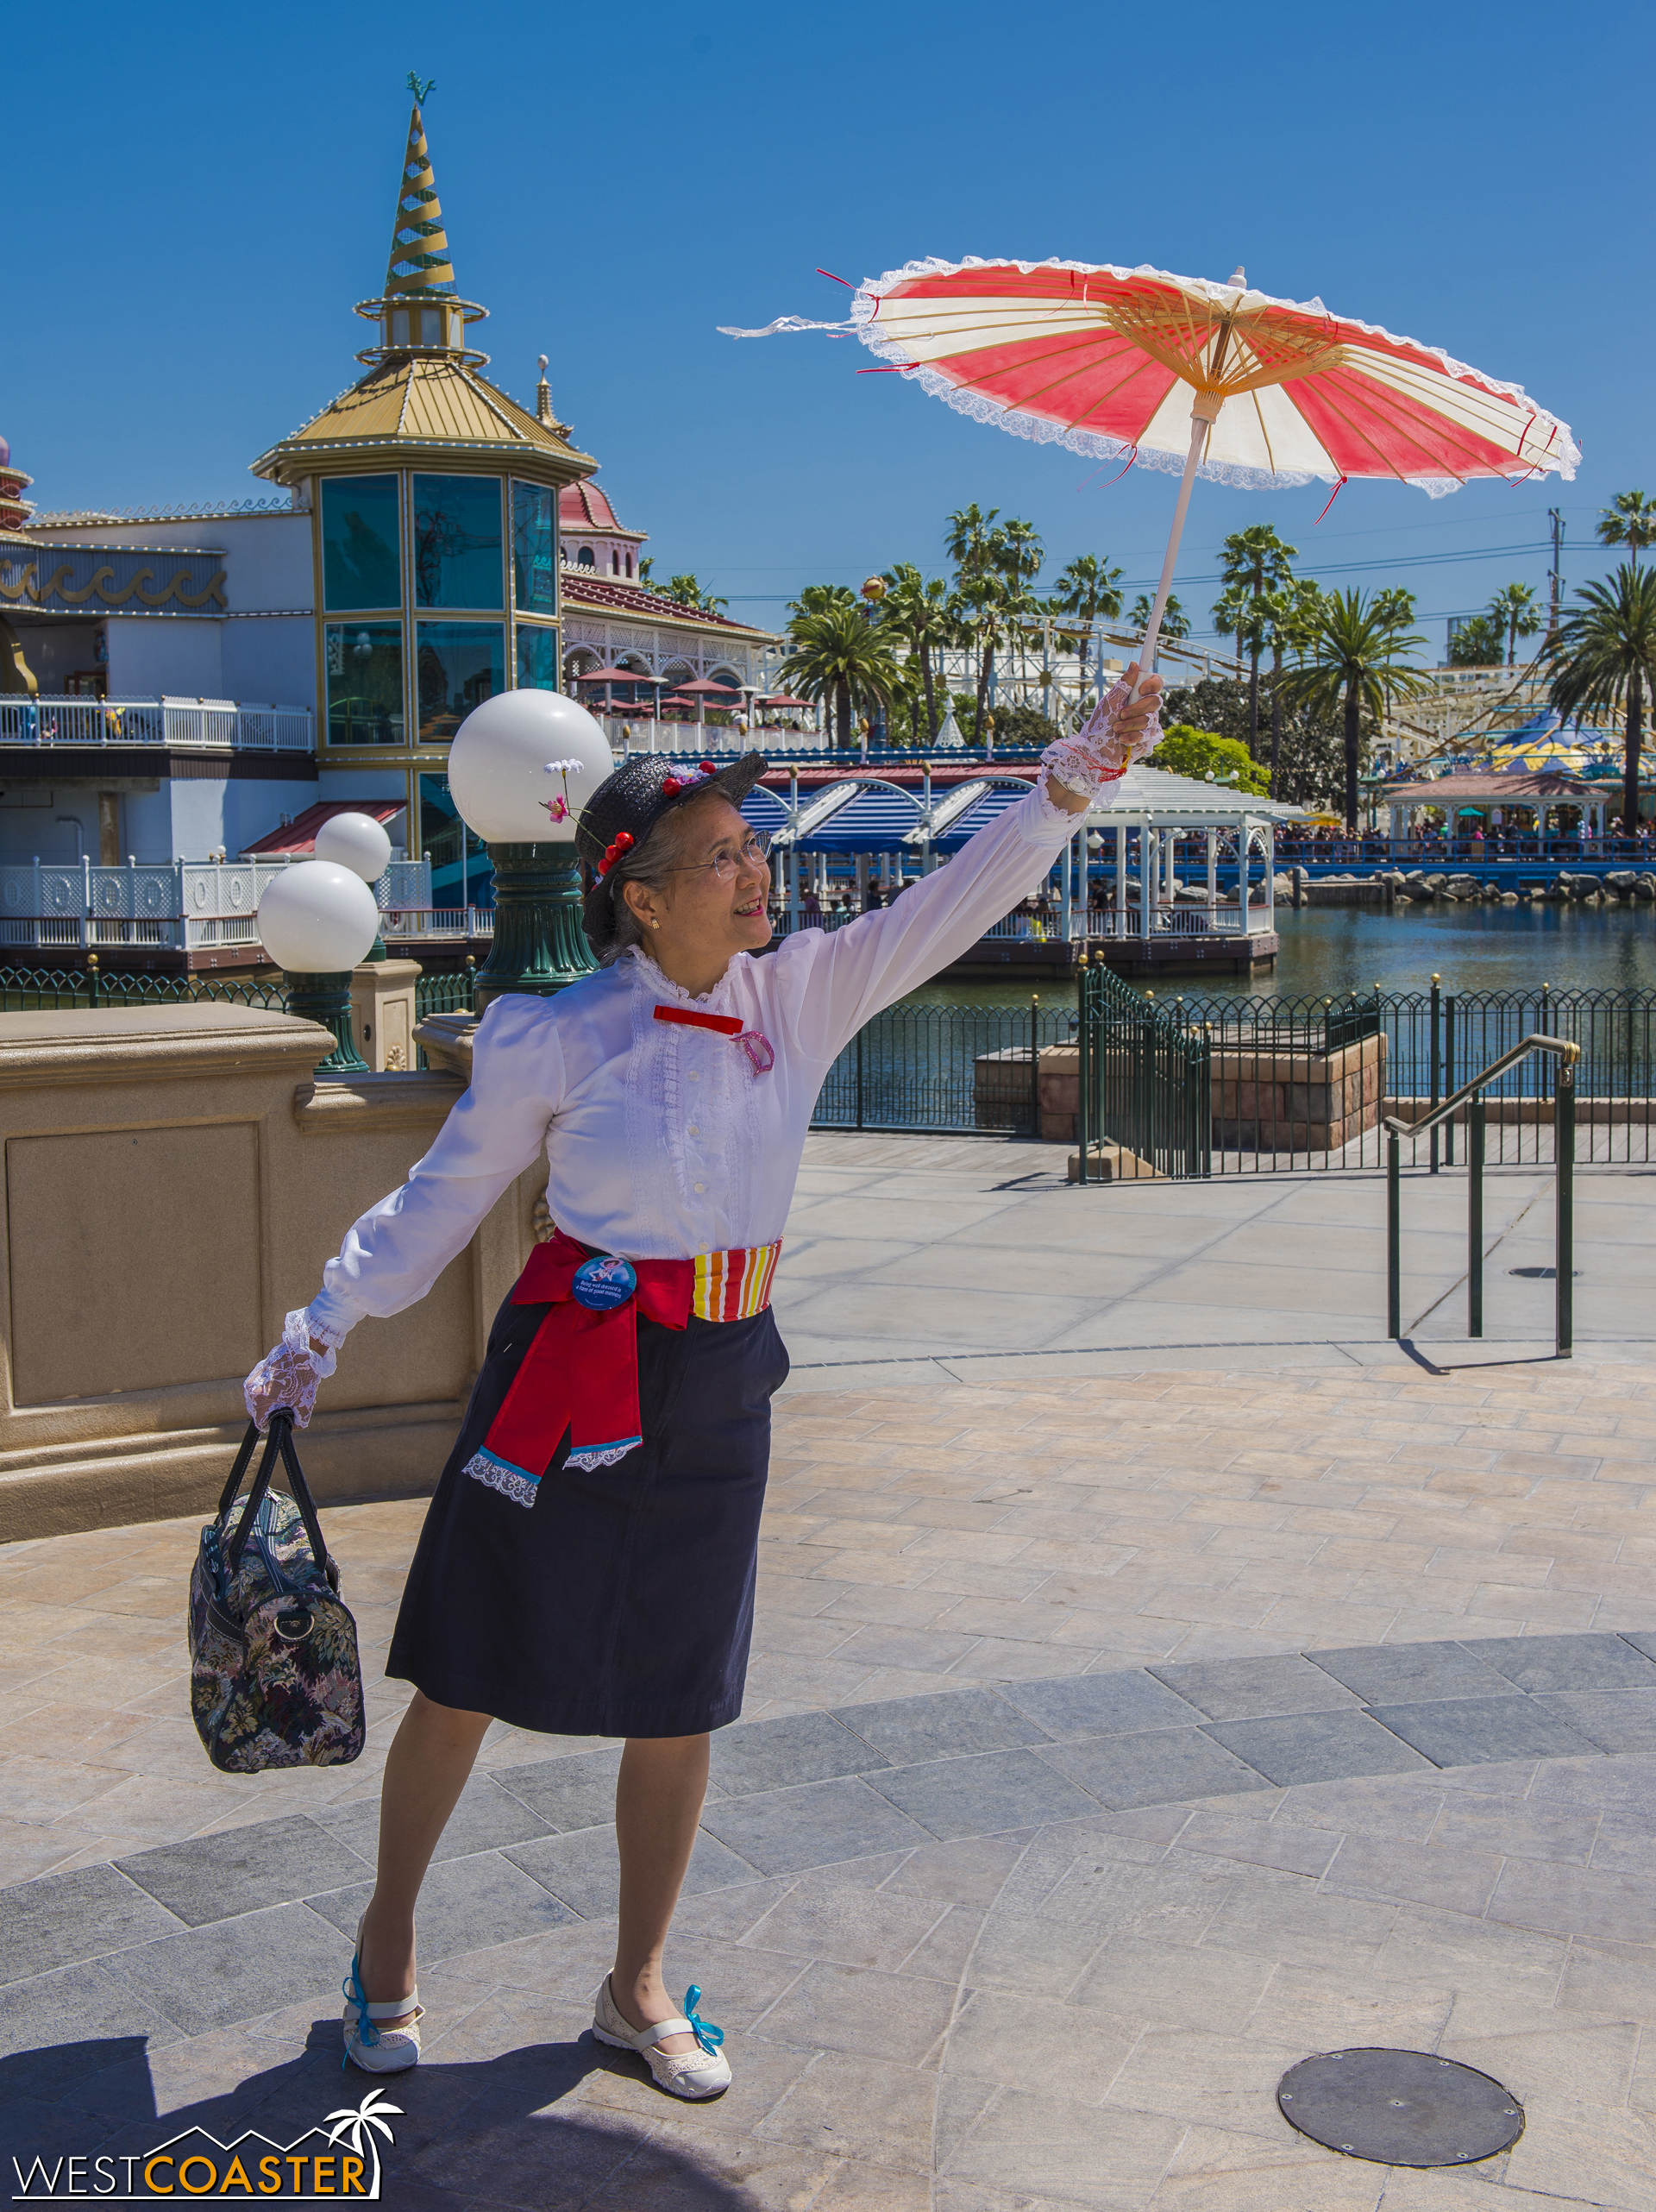 """In another chapter of the """"You're Never Too Old"""" series, here is one half of the cutest Disney Cosplay guests I've seen."""